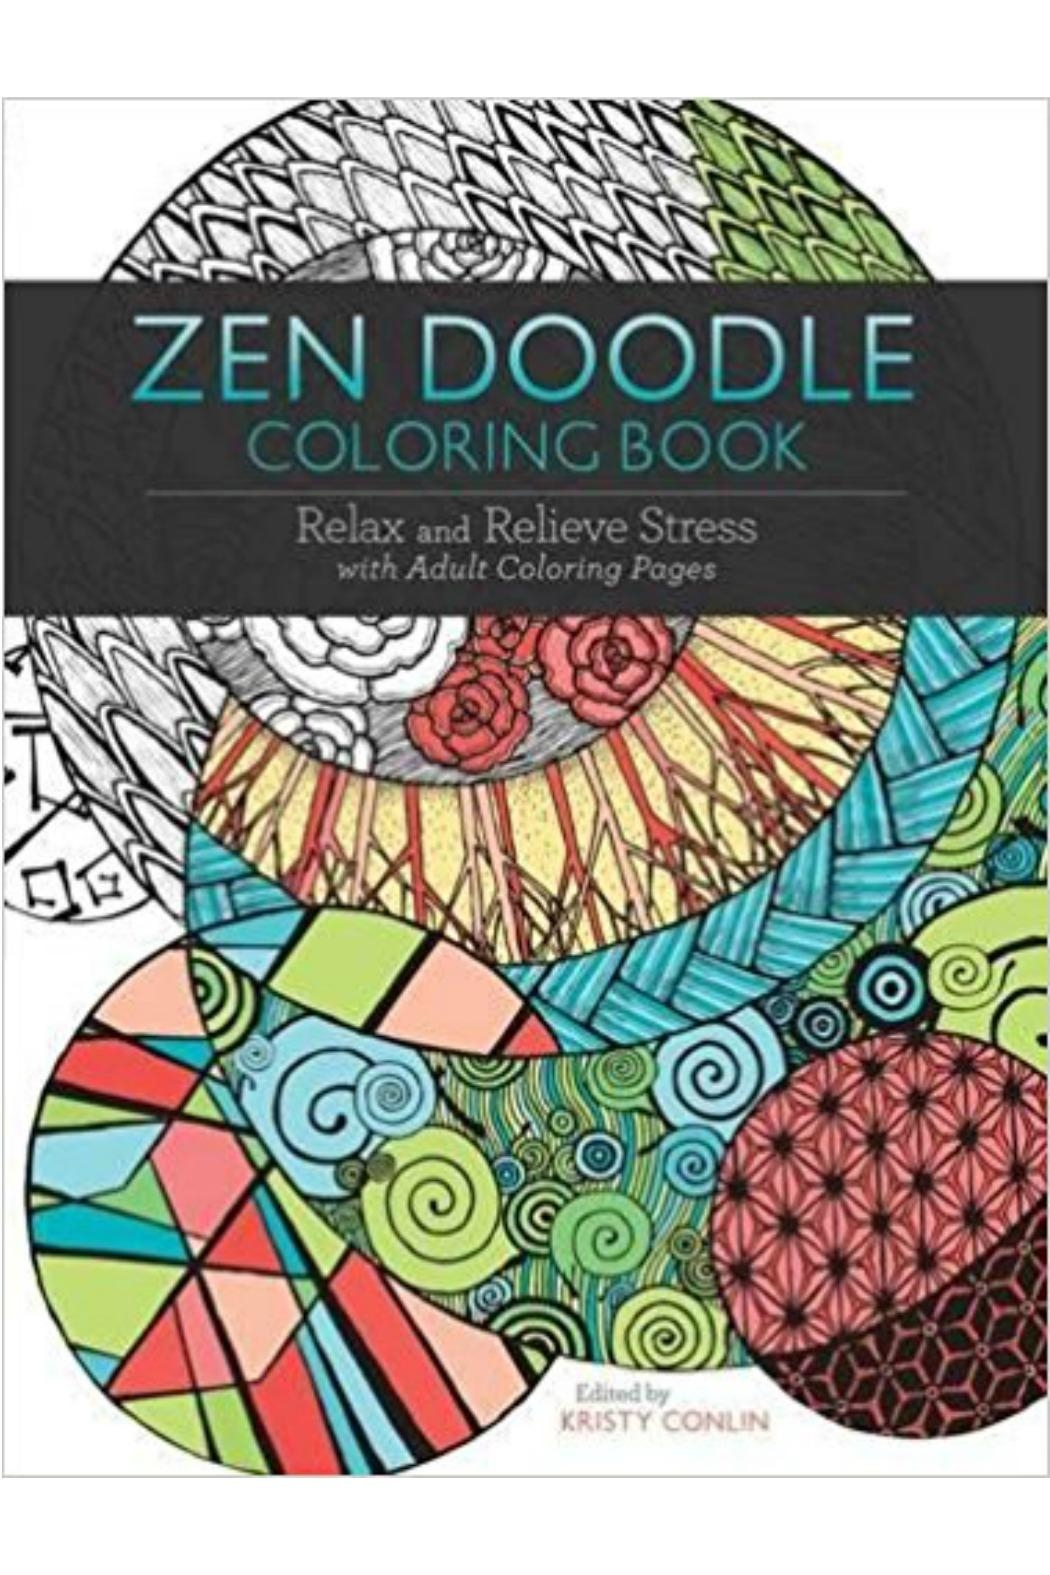 Mhgs Zendoodle Coloring Book From Florida By Mad Hatter General